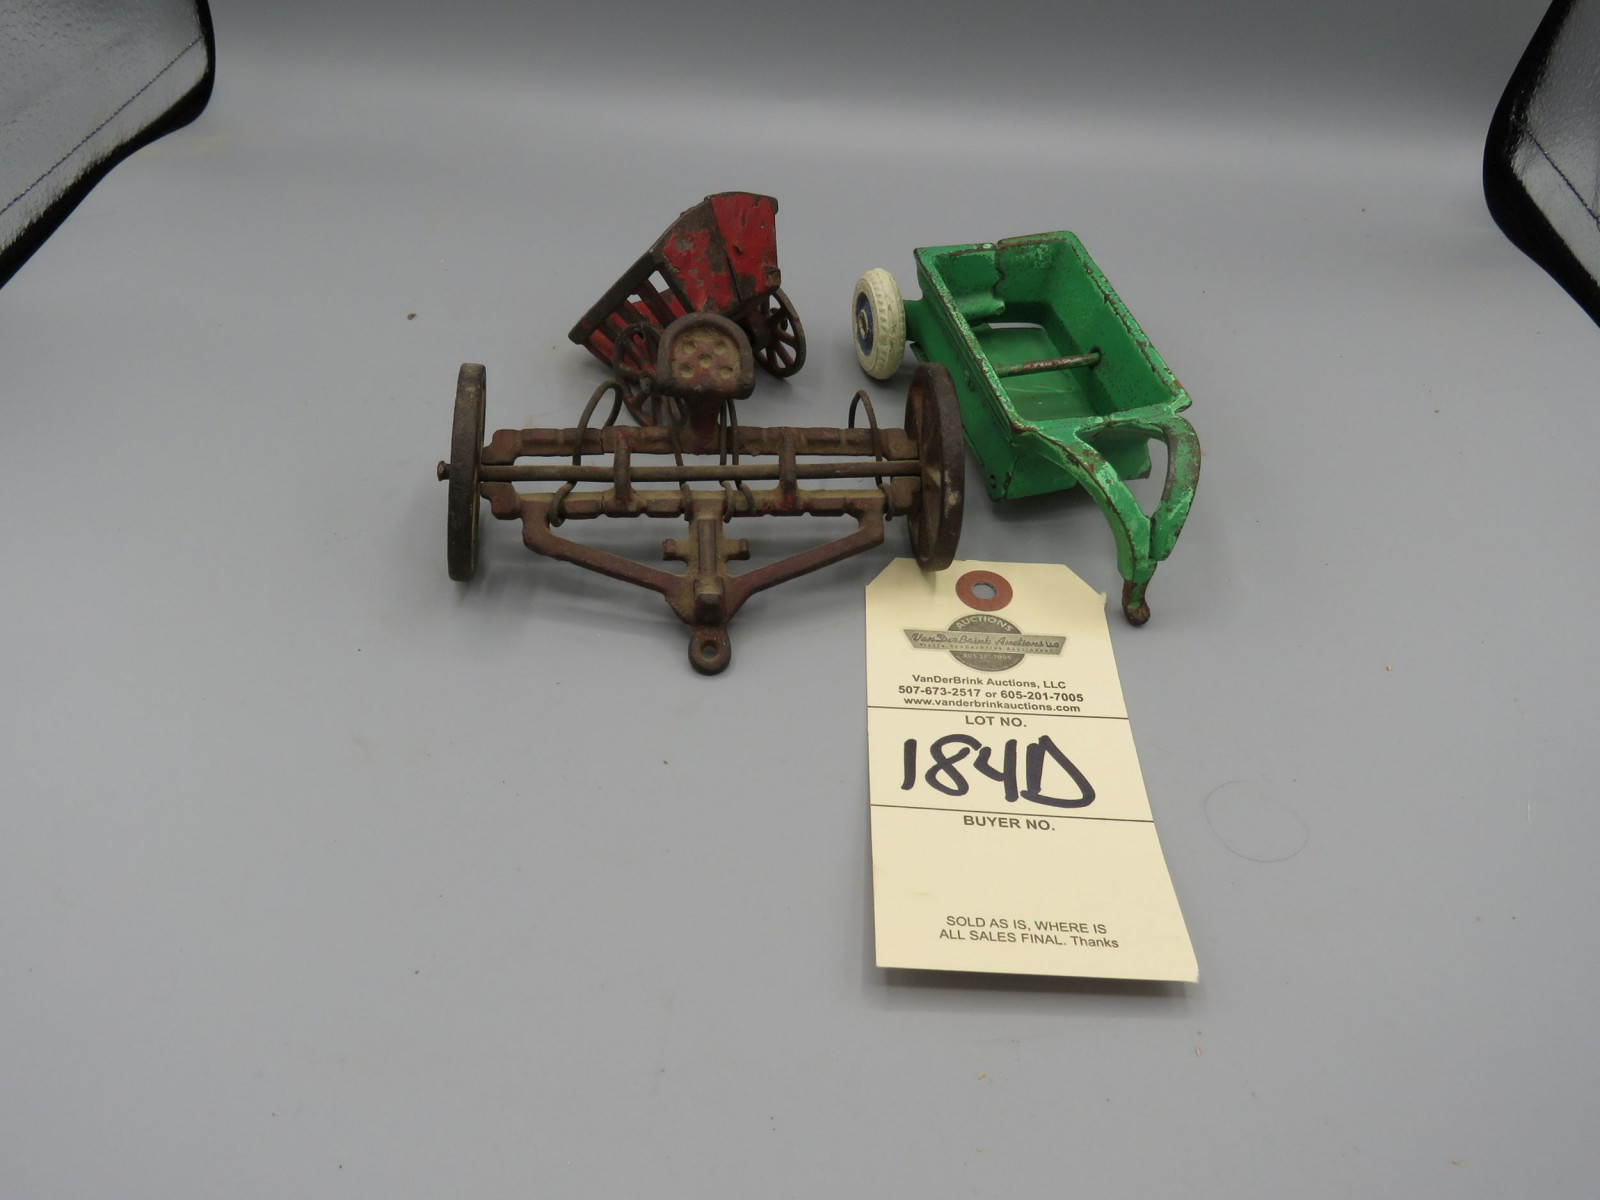 Various Cast Iron Toy Implements Group of 3 - Image 1